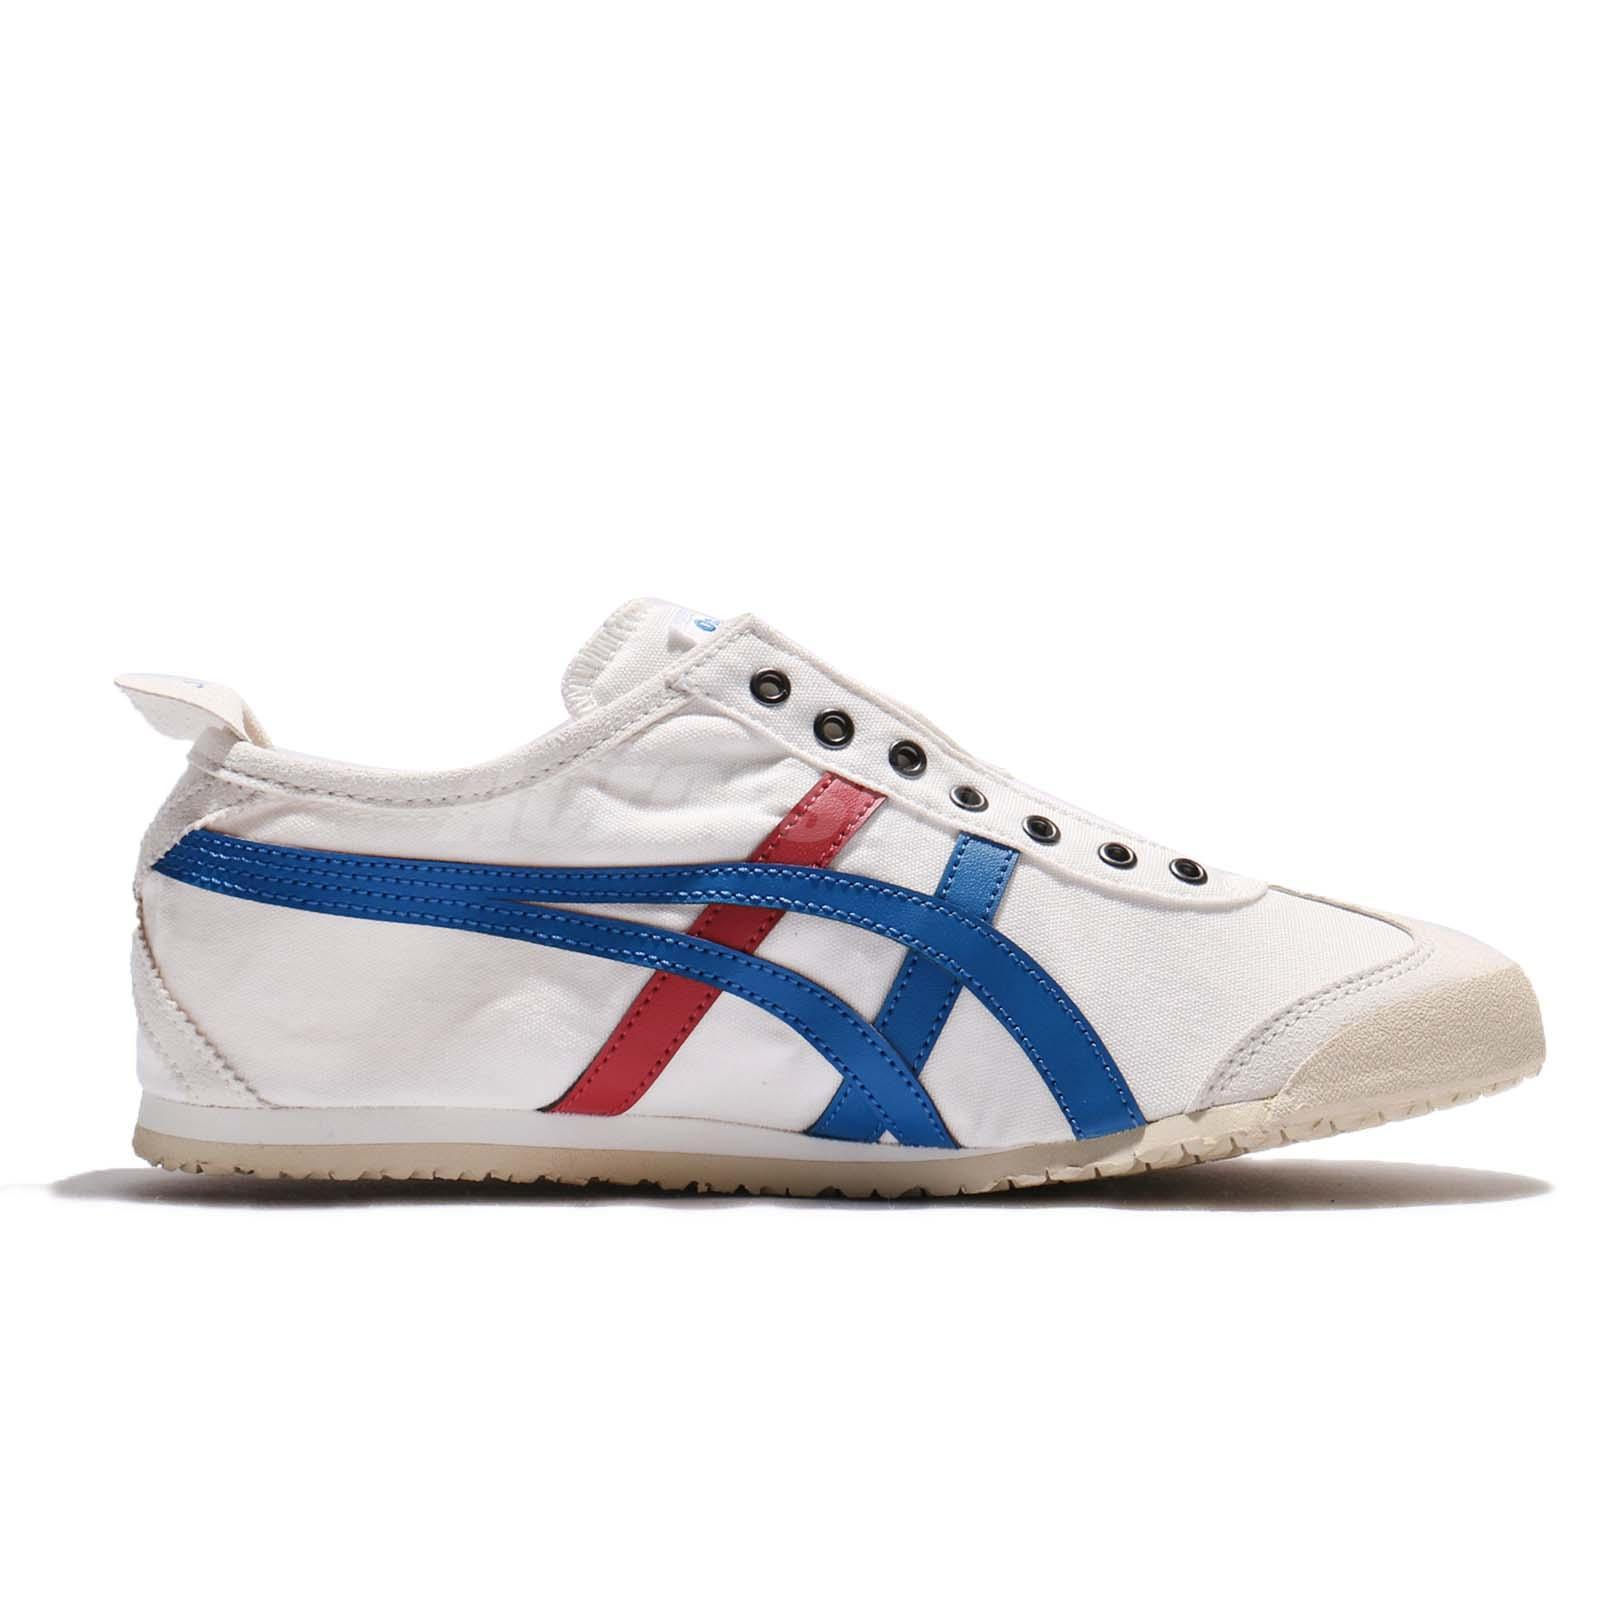 new arrival f2f83 c6813 Onitsuka Tiger Men shoes Mexico 66 Slip-on White TH1B2N0143 RHK